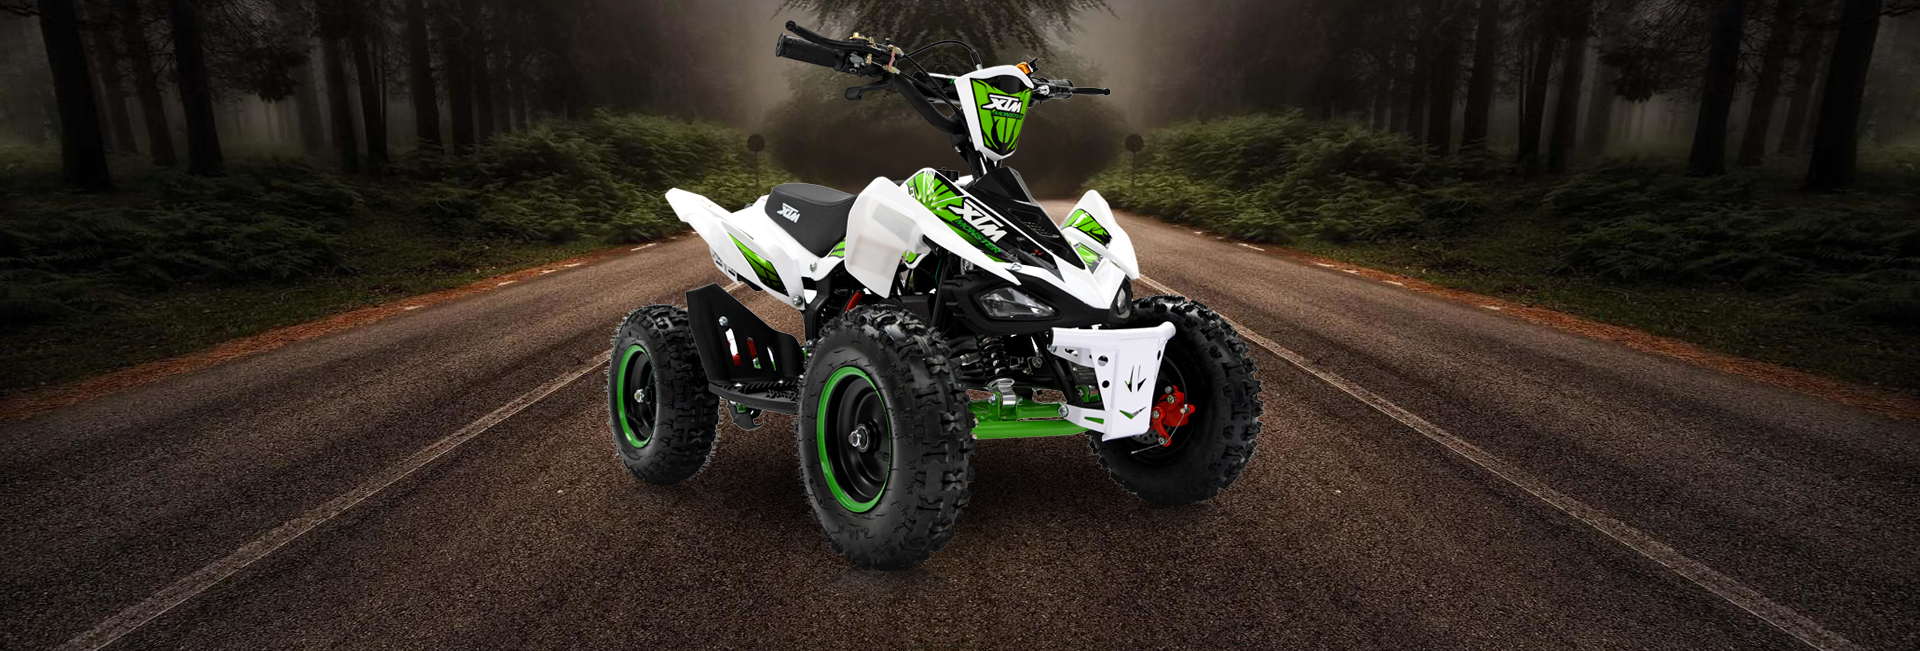 Monster Quad Bikes